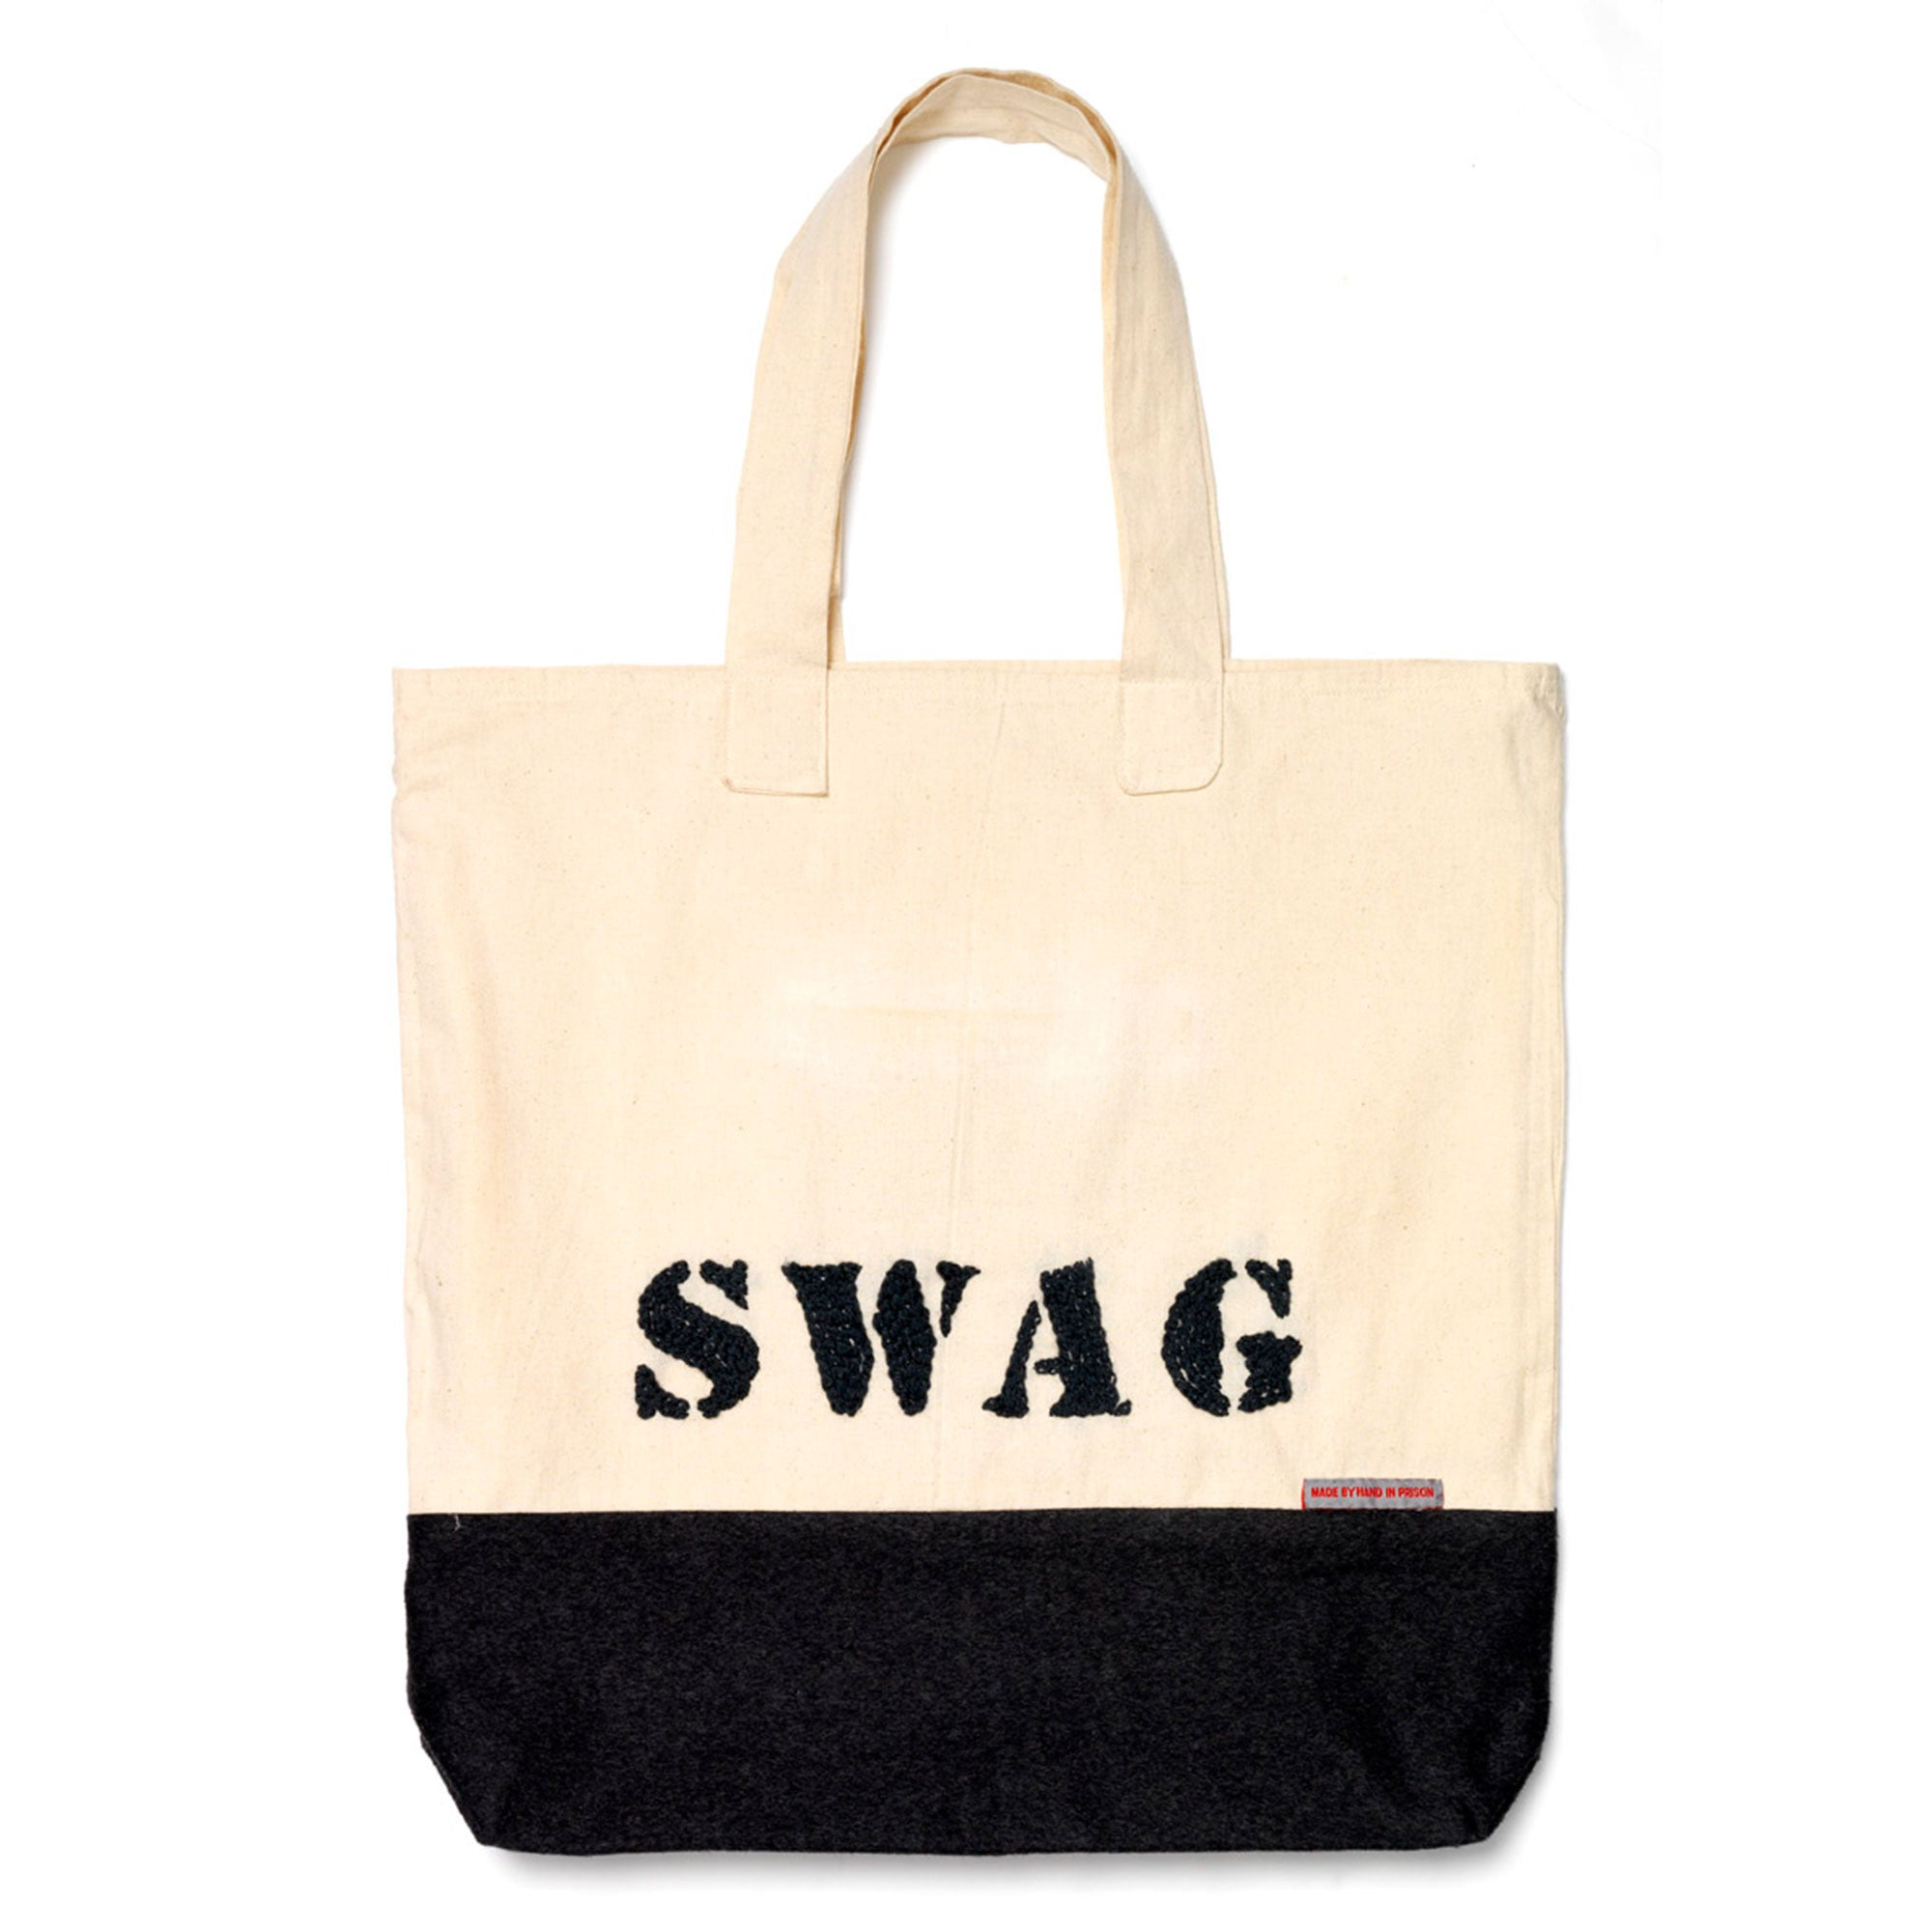 Swag Bag Hand Embroidered Black Fine Cell Work